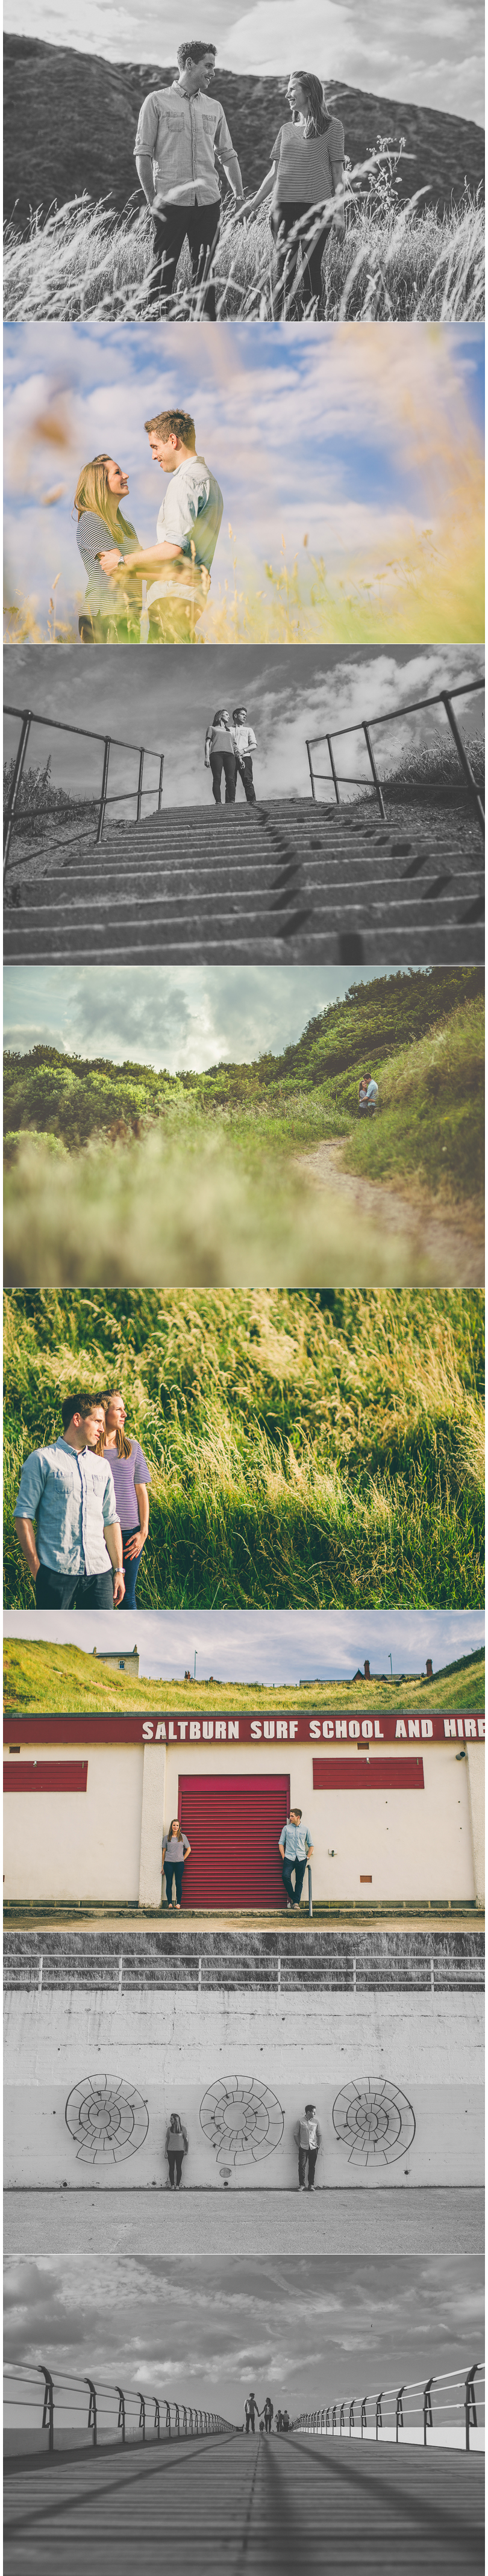 Scarborough York Yorkshire Wedding Photographer Yorkshire Engagement Pre Wedding Shoot Saltburn By The Sea Yorkshire